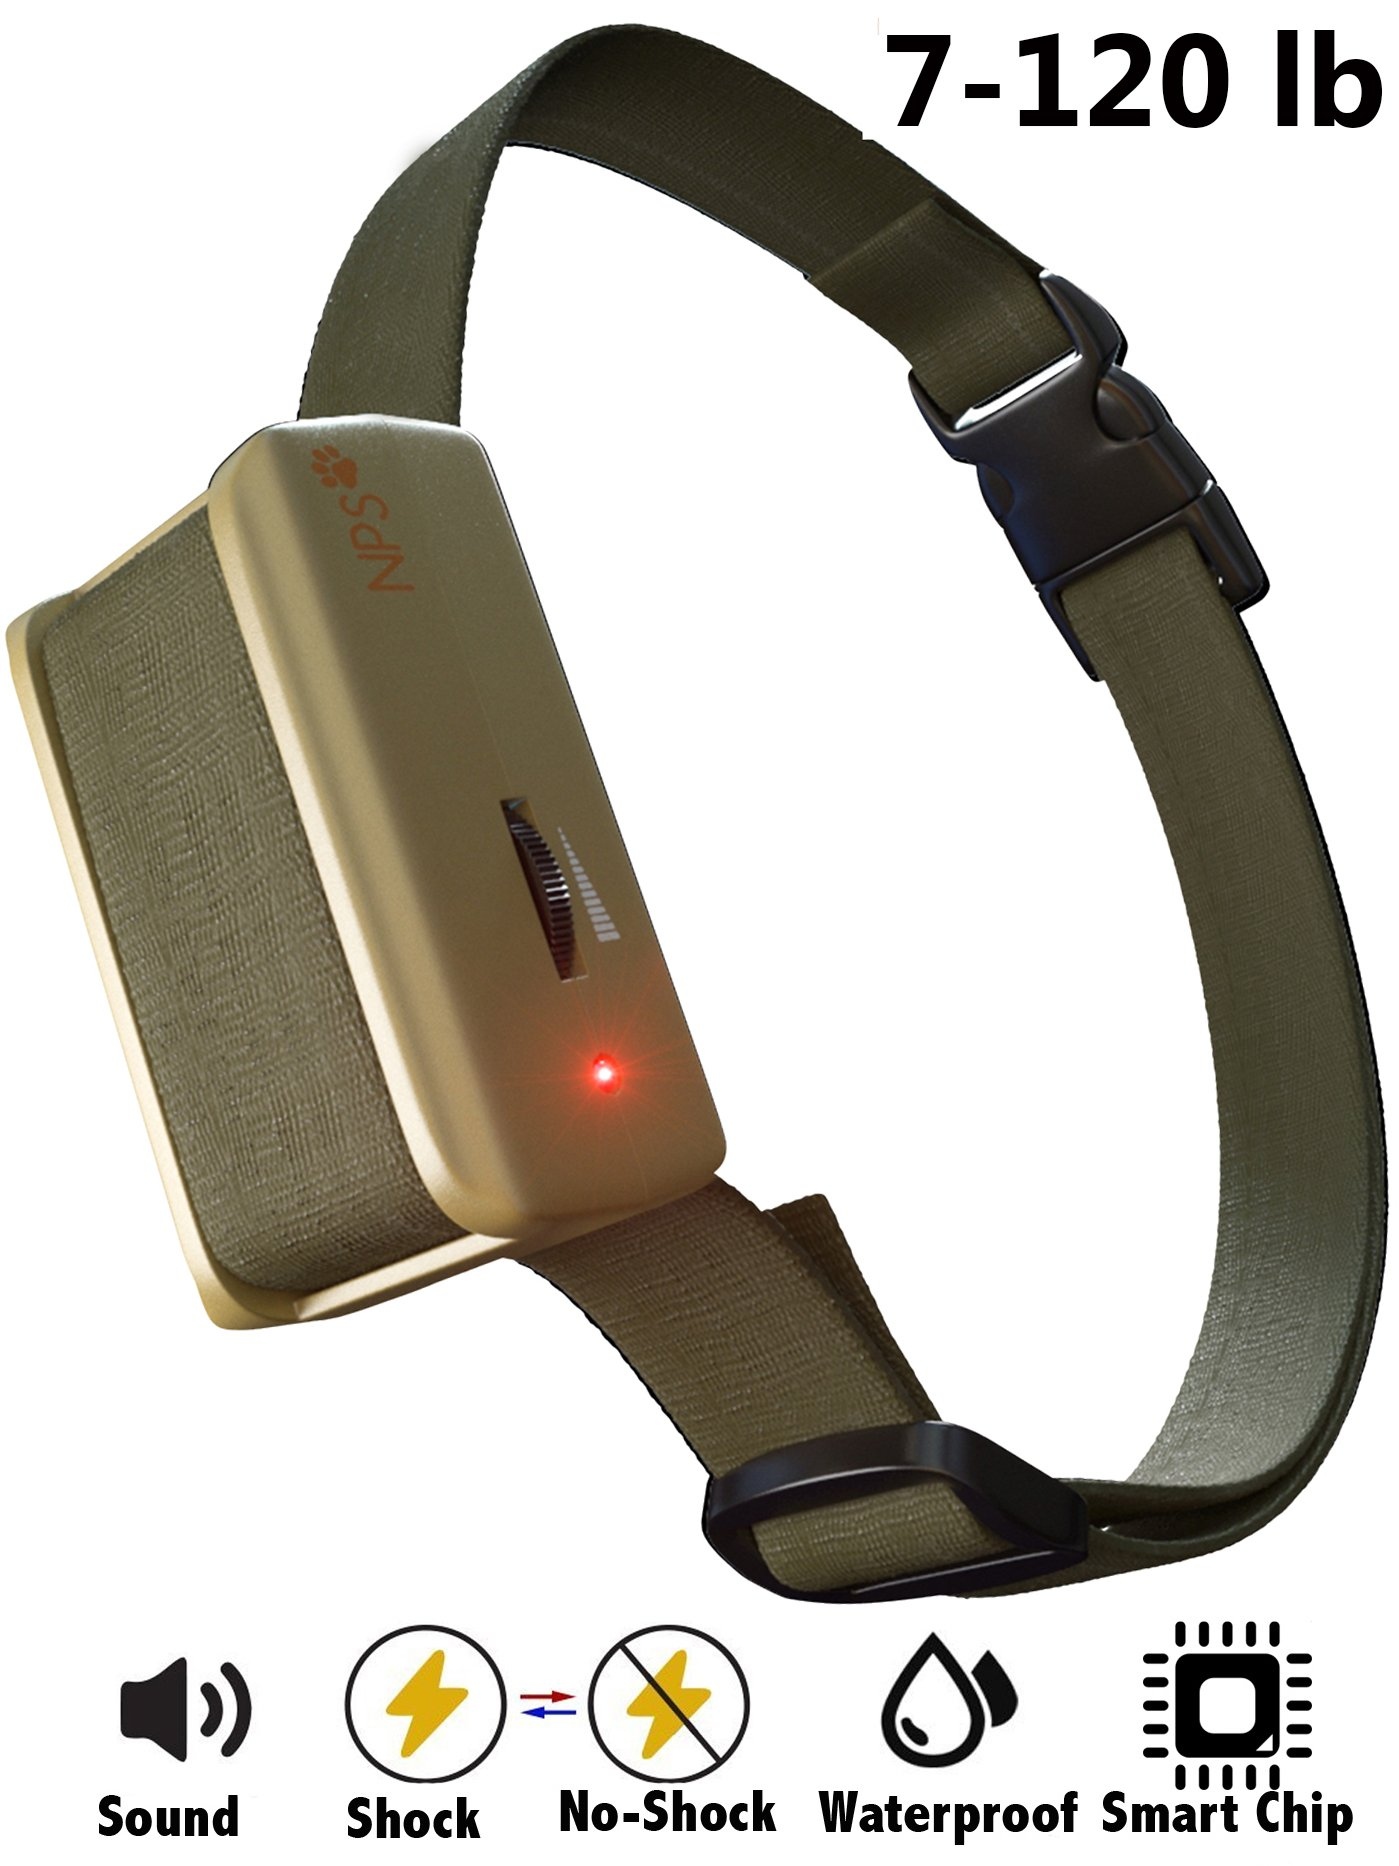 Newest [2018 SUPERHUMAN CHIP] Bark Collar with Smart Detection Module - Best Dog Shock, Beep Anti-Barking Collar. No Bark Control for Small/Medium/Large Dogs - Stop Barking Safe Humane